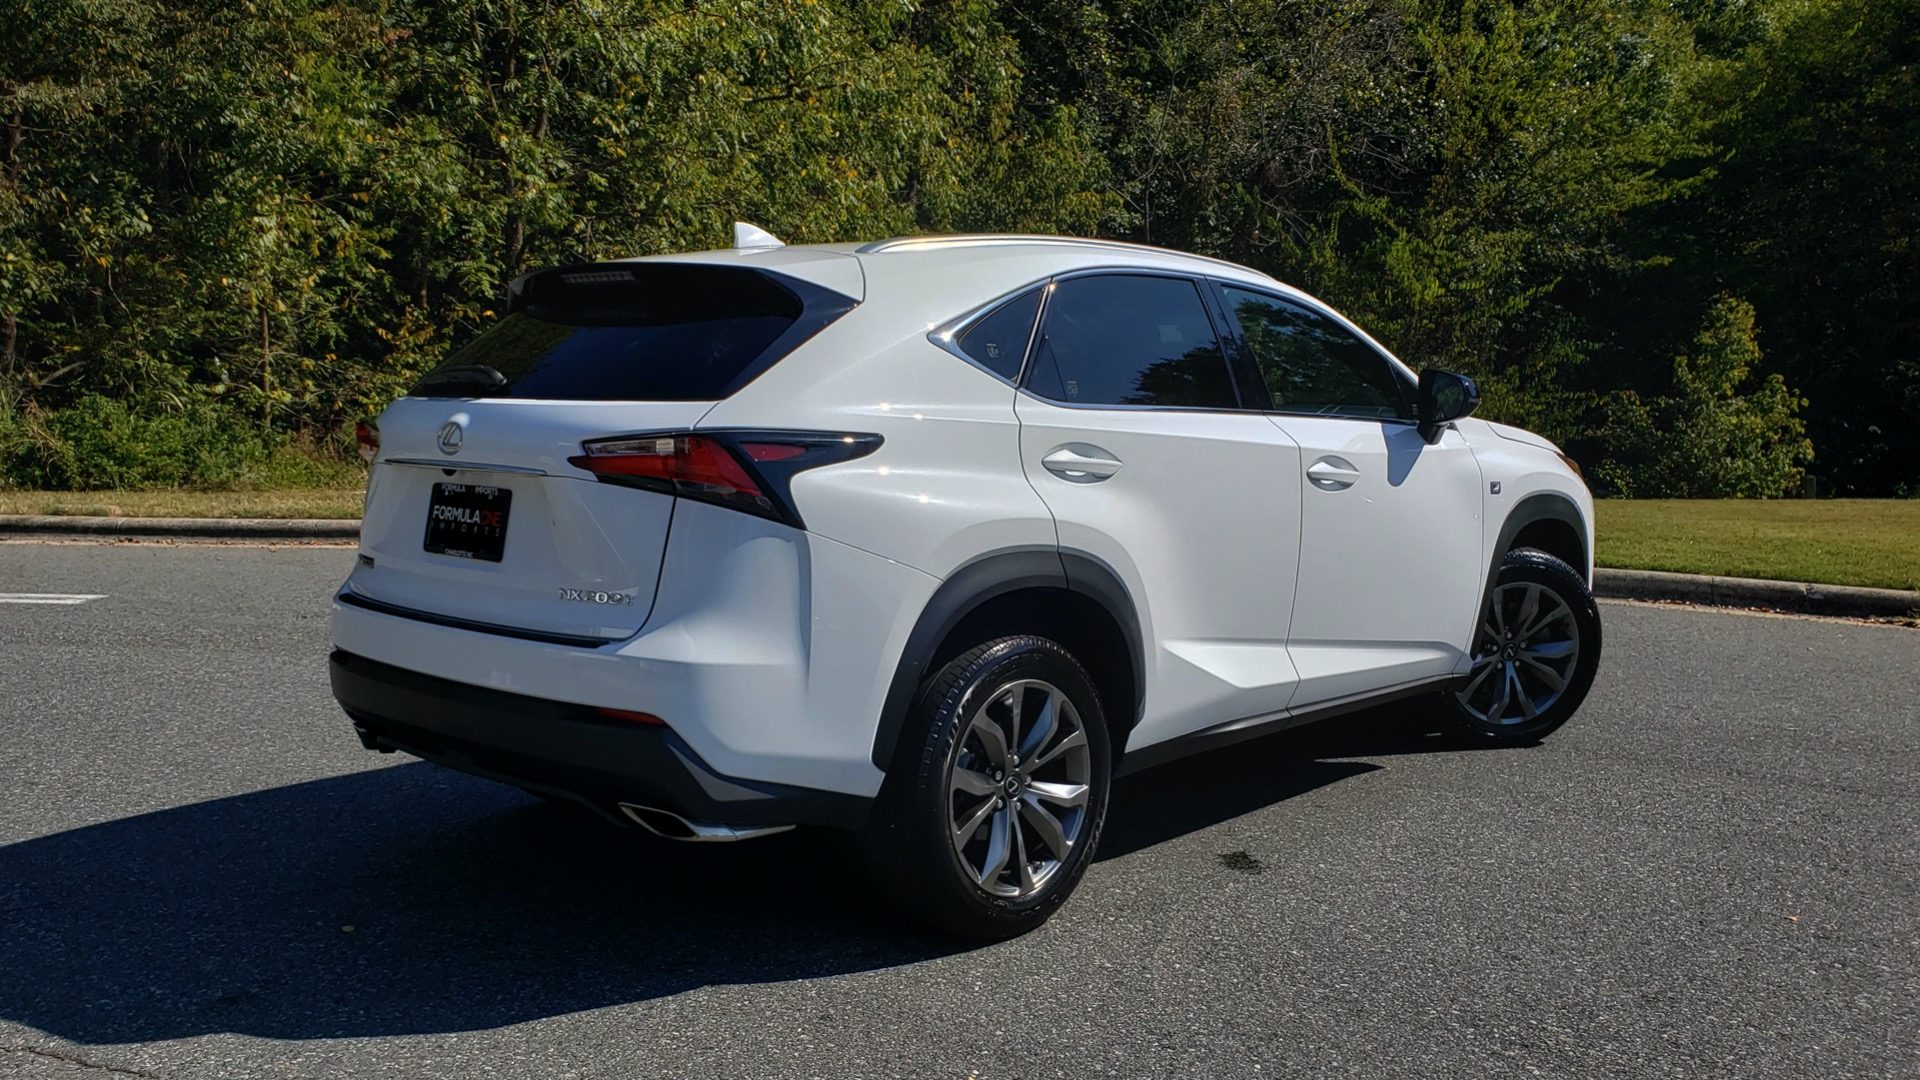 Used 2016 Lexus NX 200t F-SPORT / BACK-UP CAMERA / 18 INCH WHEELS for sale Sold at Formula Imports in Charlotte NC 28227 8